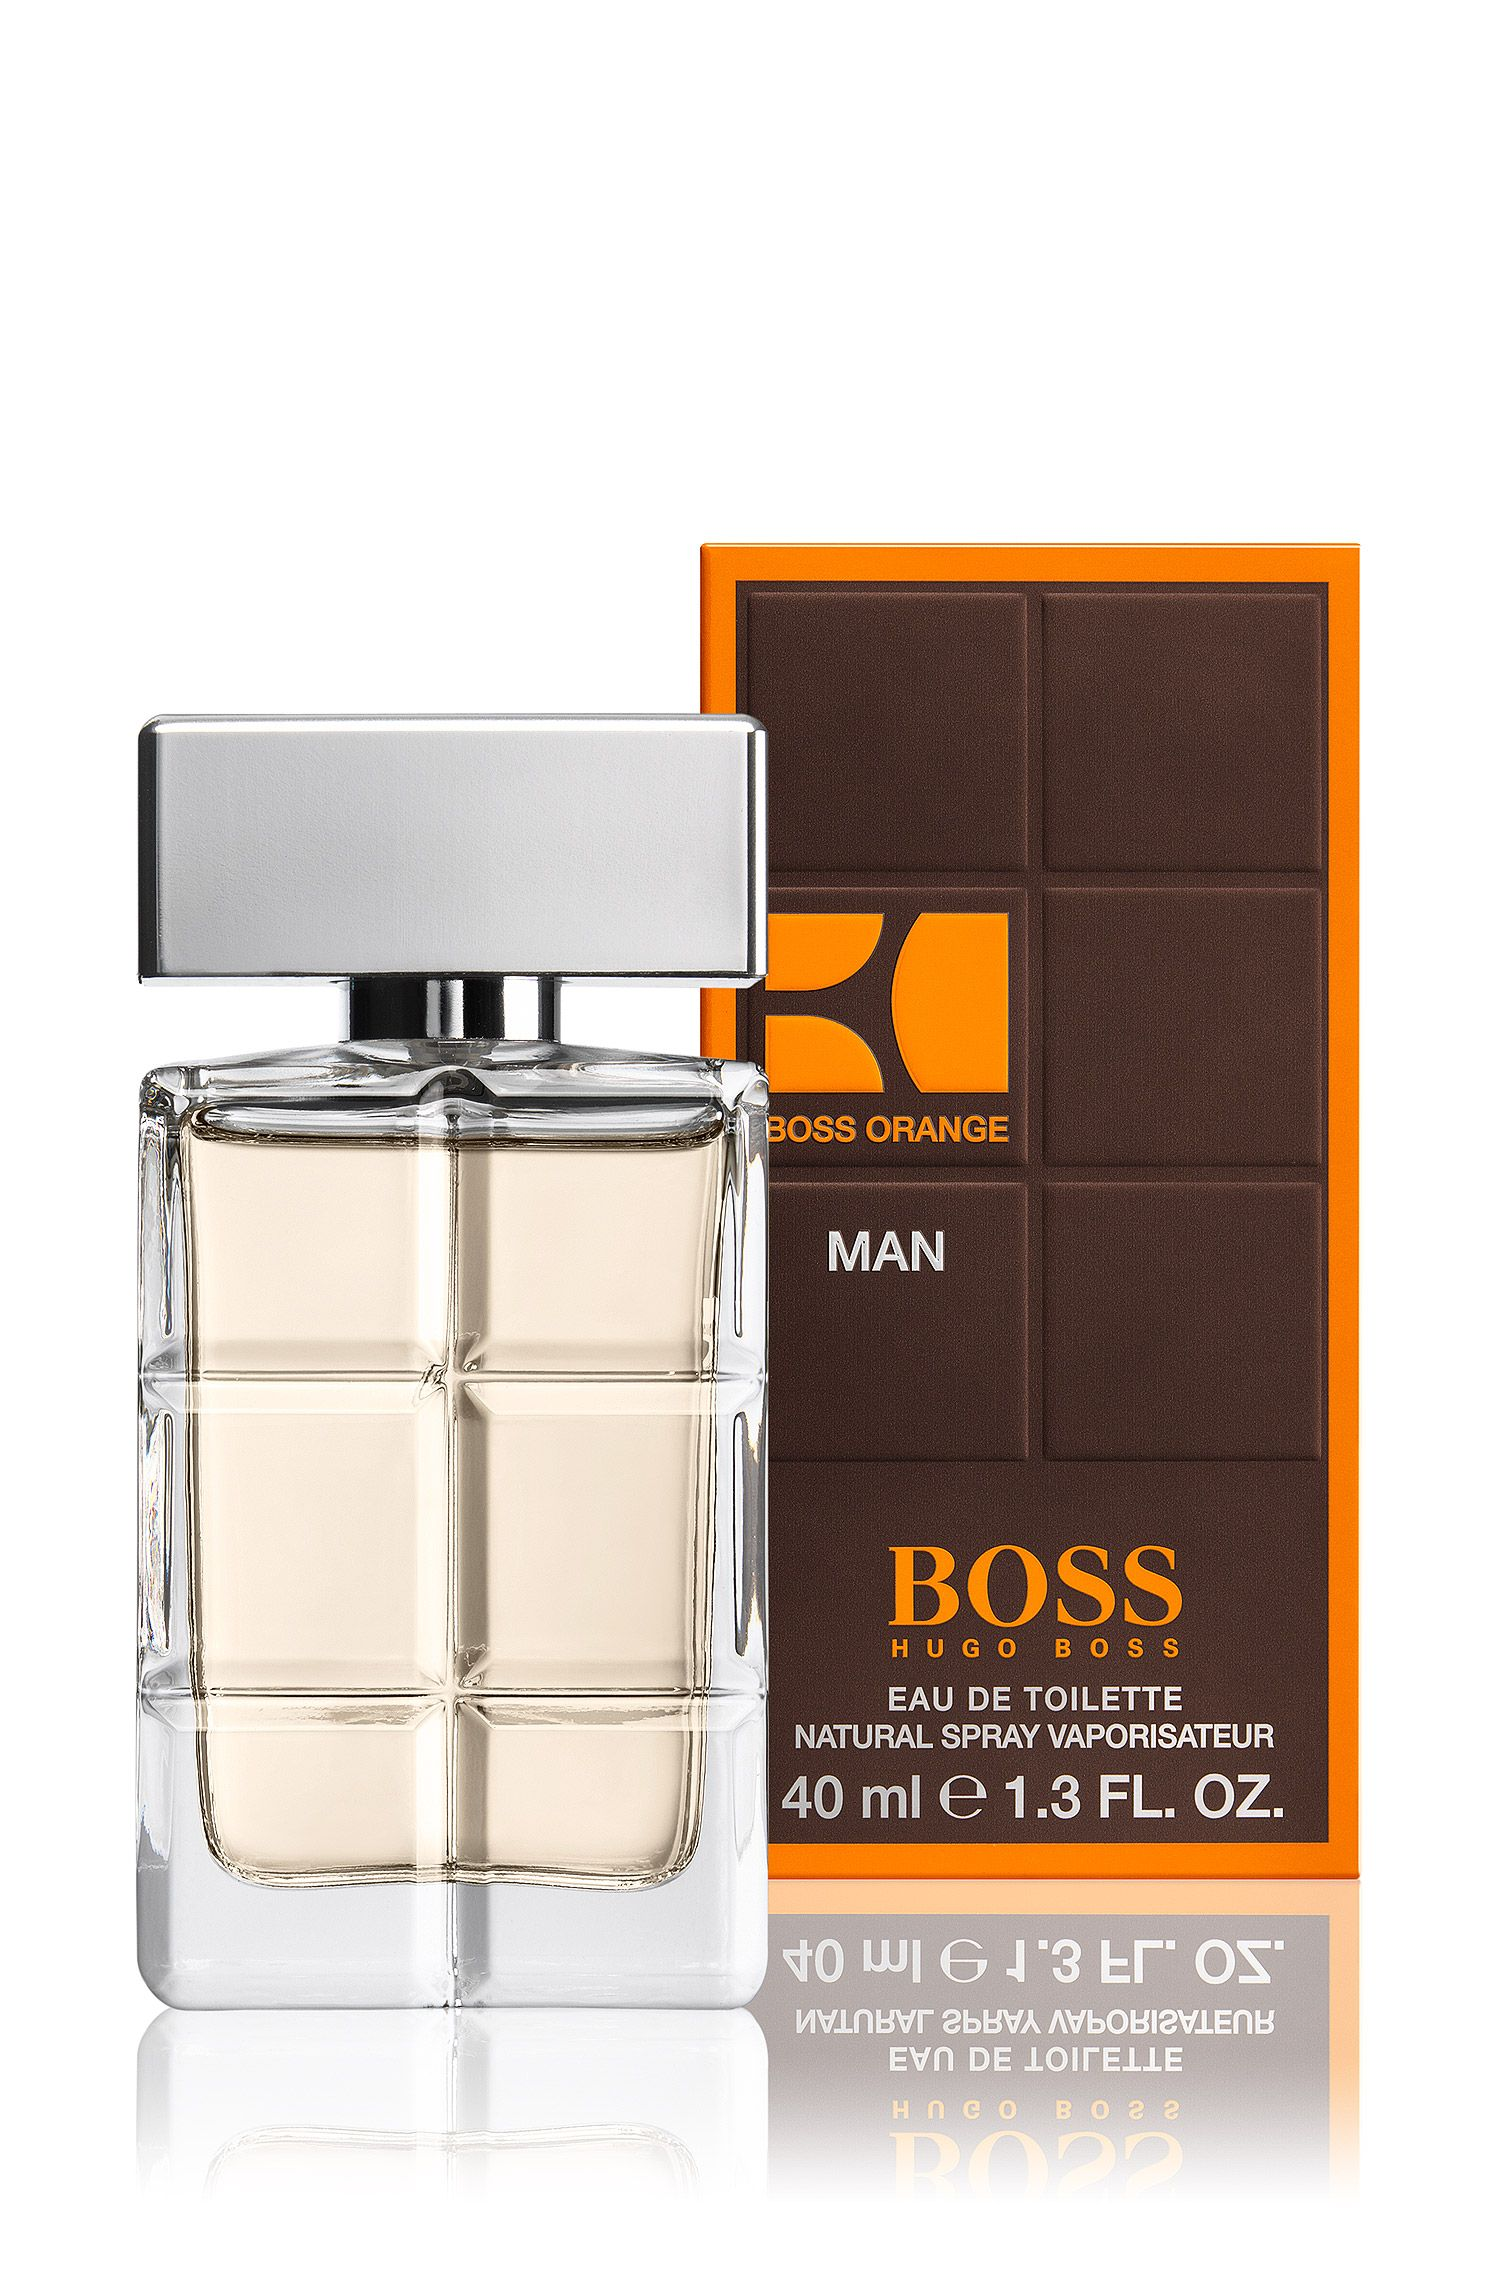 Eau de toilette BOSS Orange 40 ml